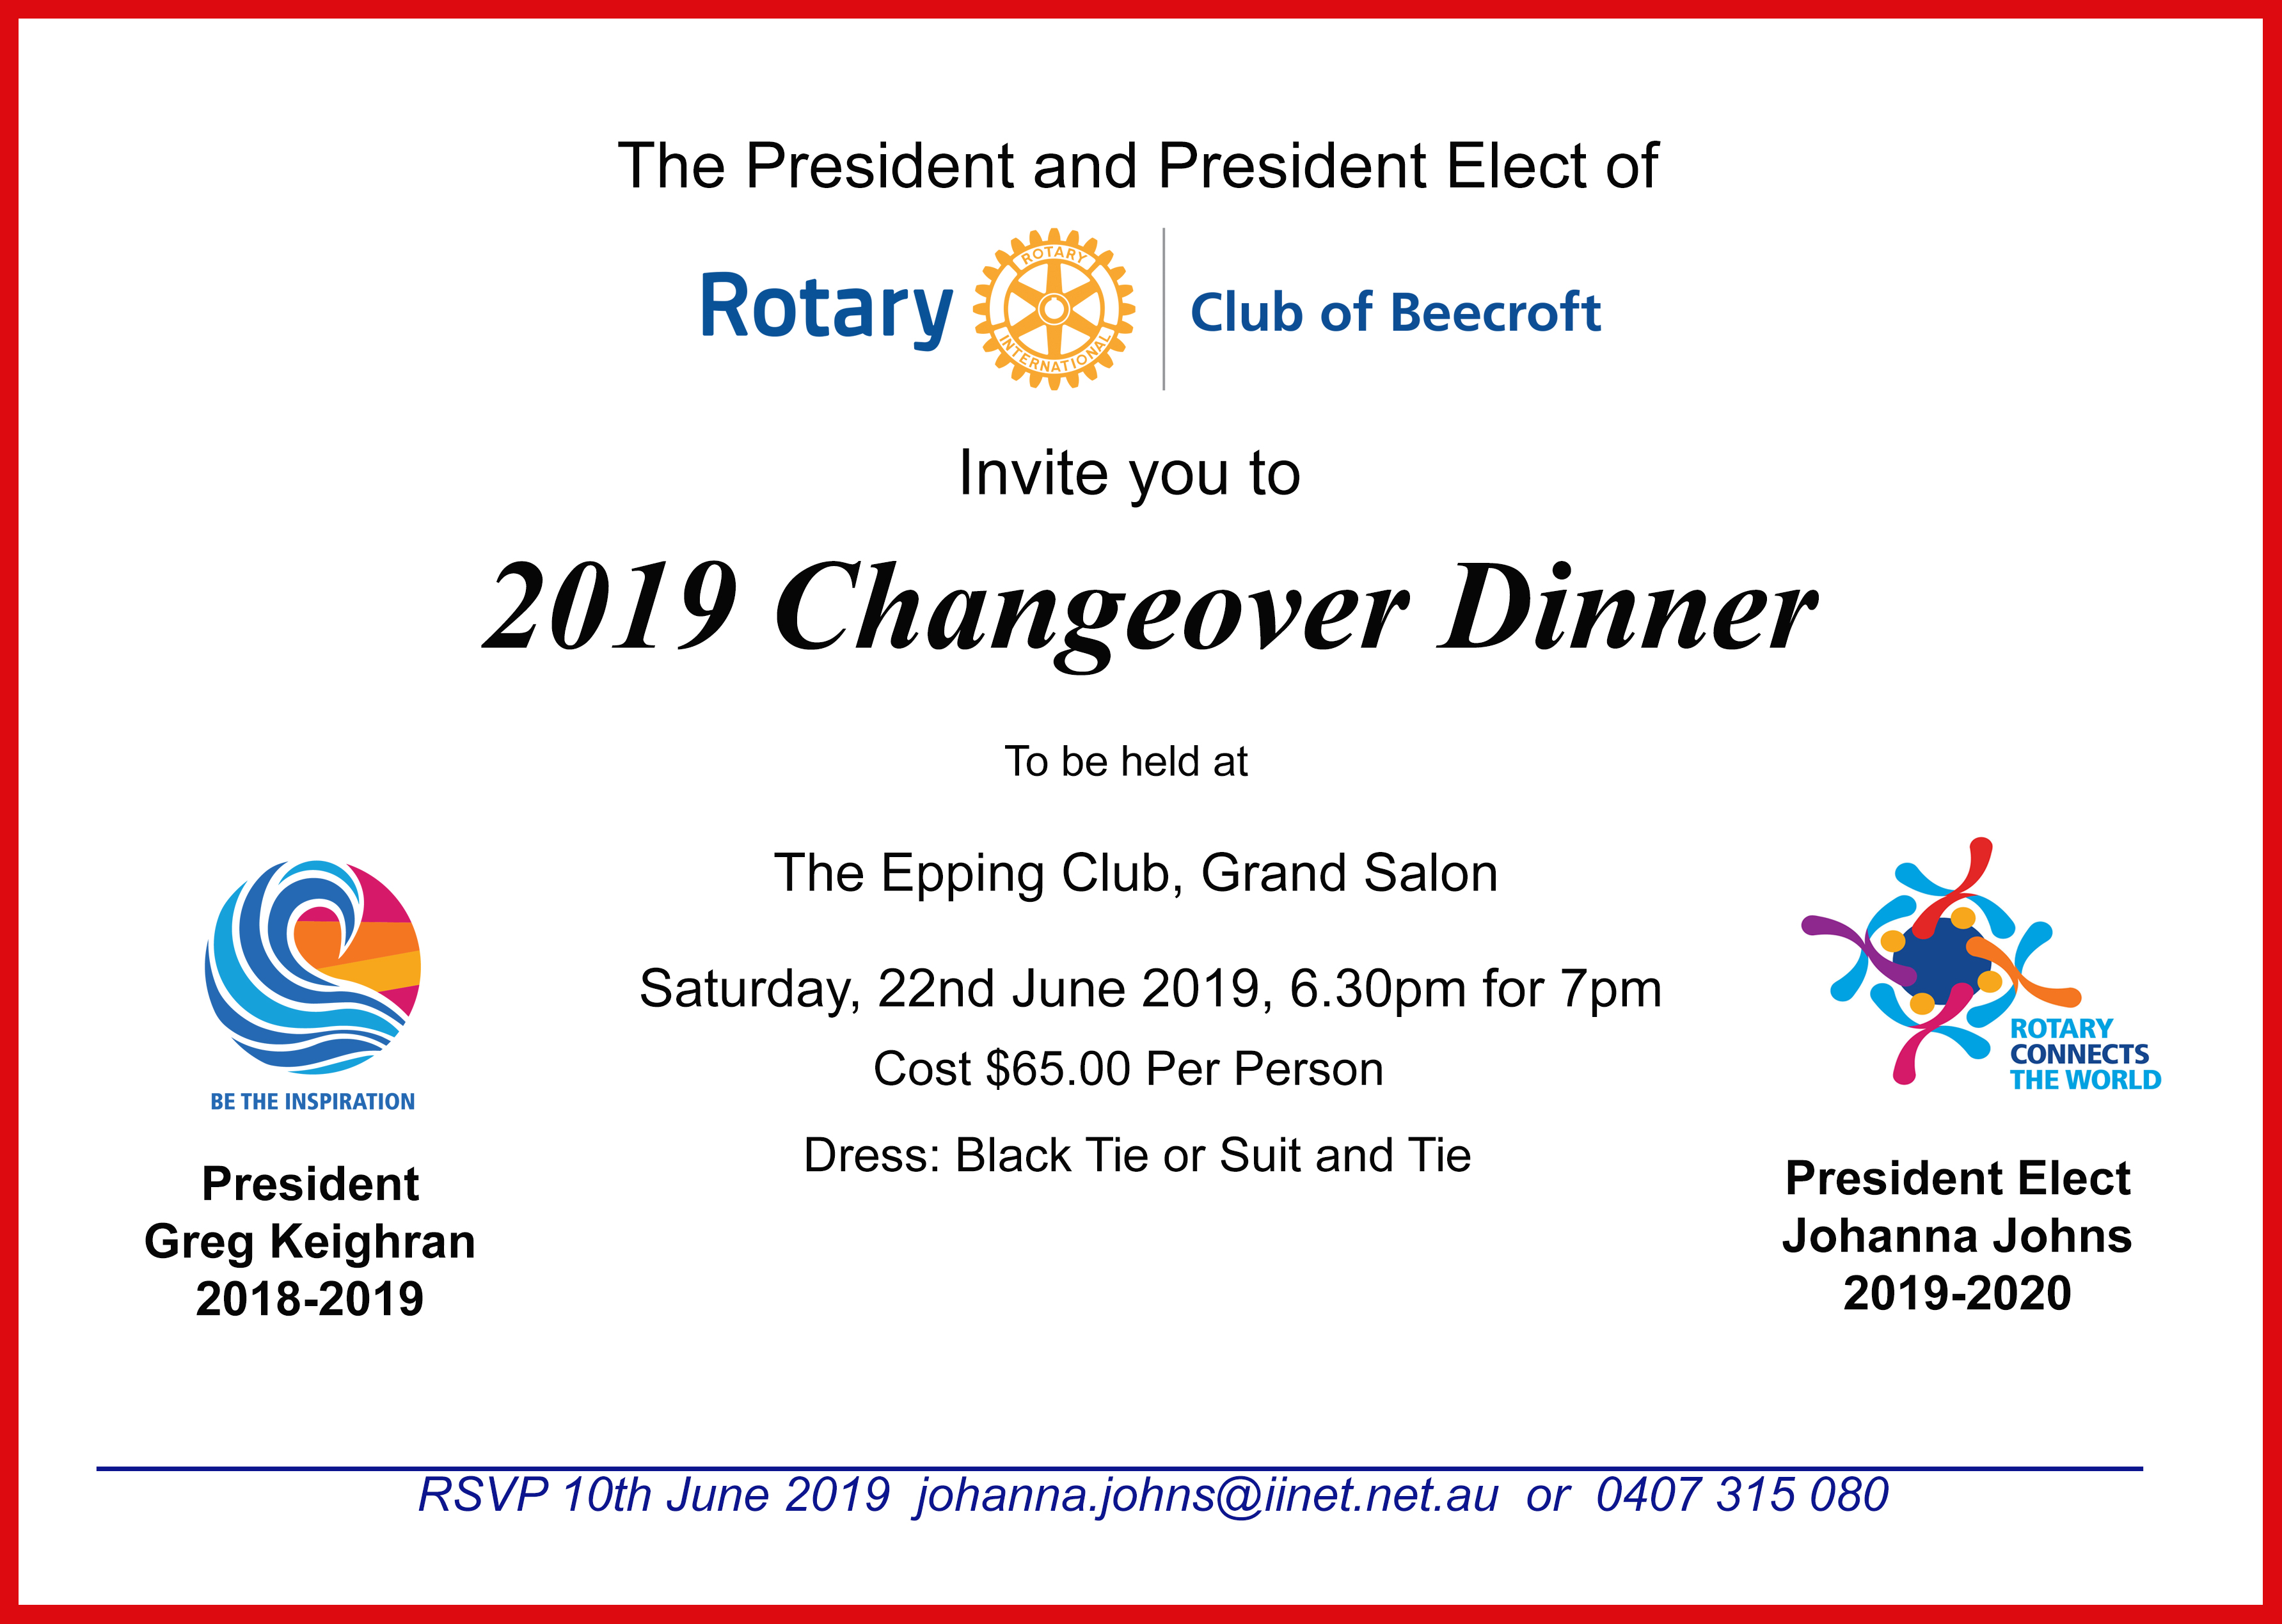 Beecroft Rotary Changeover Dinner